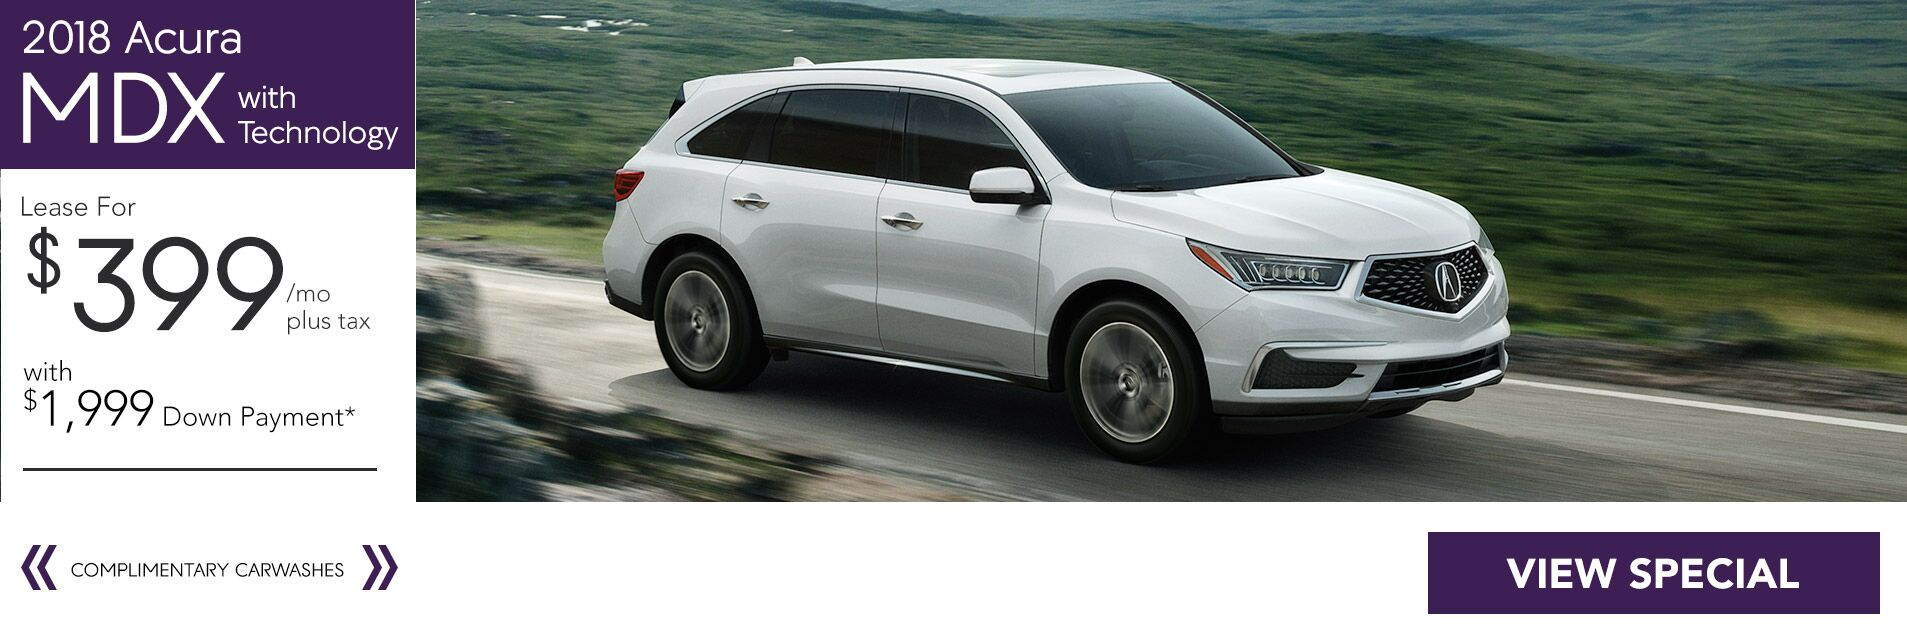 2018 Acura MDX for $399/36 Mo. with $1,999 Down